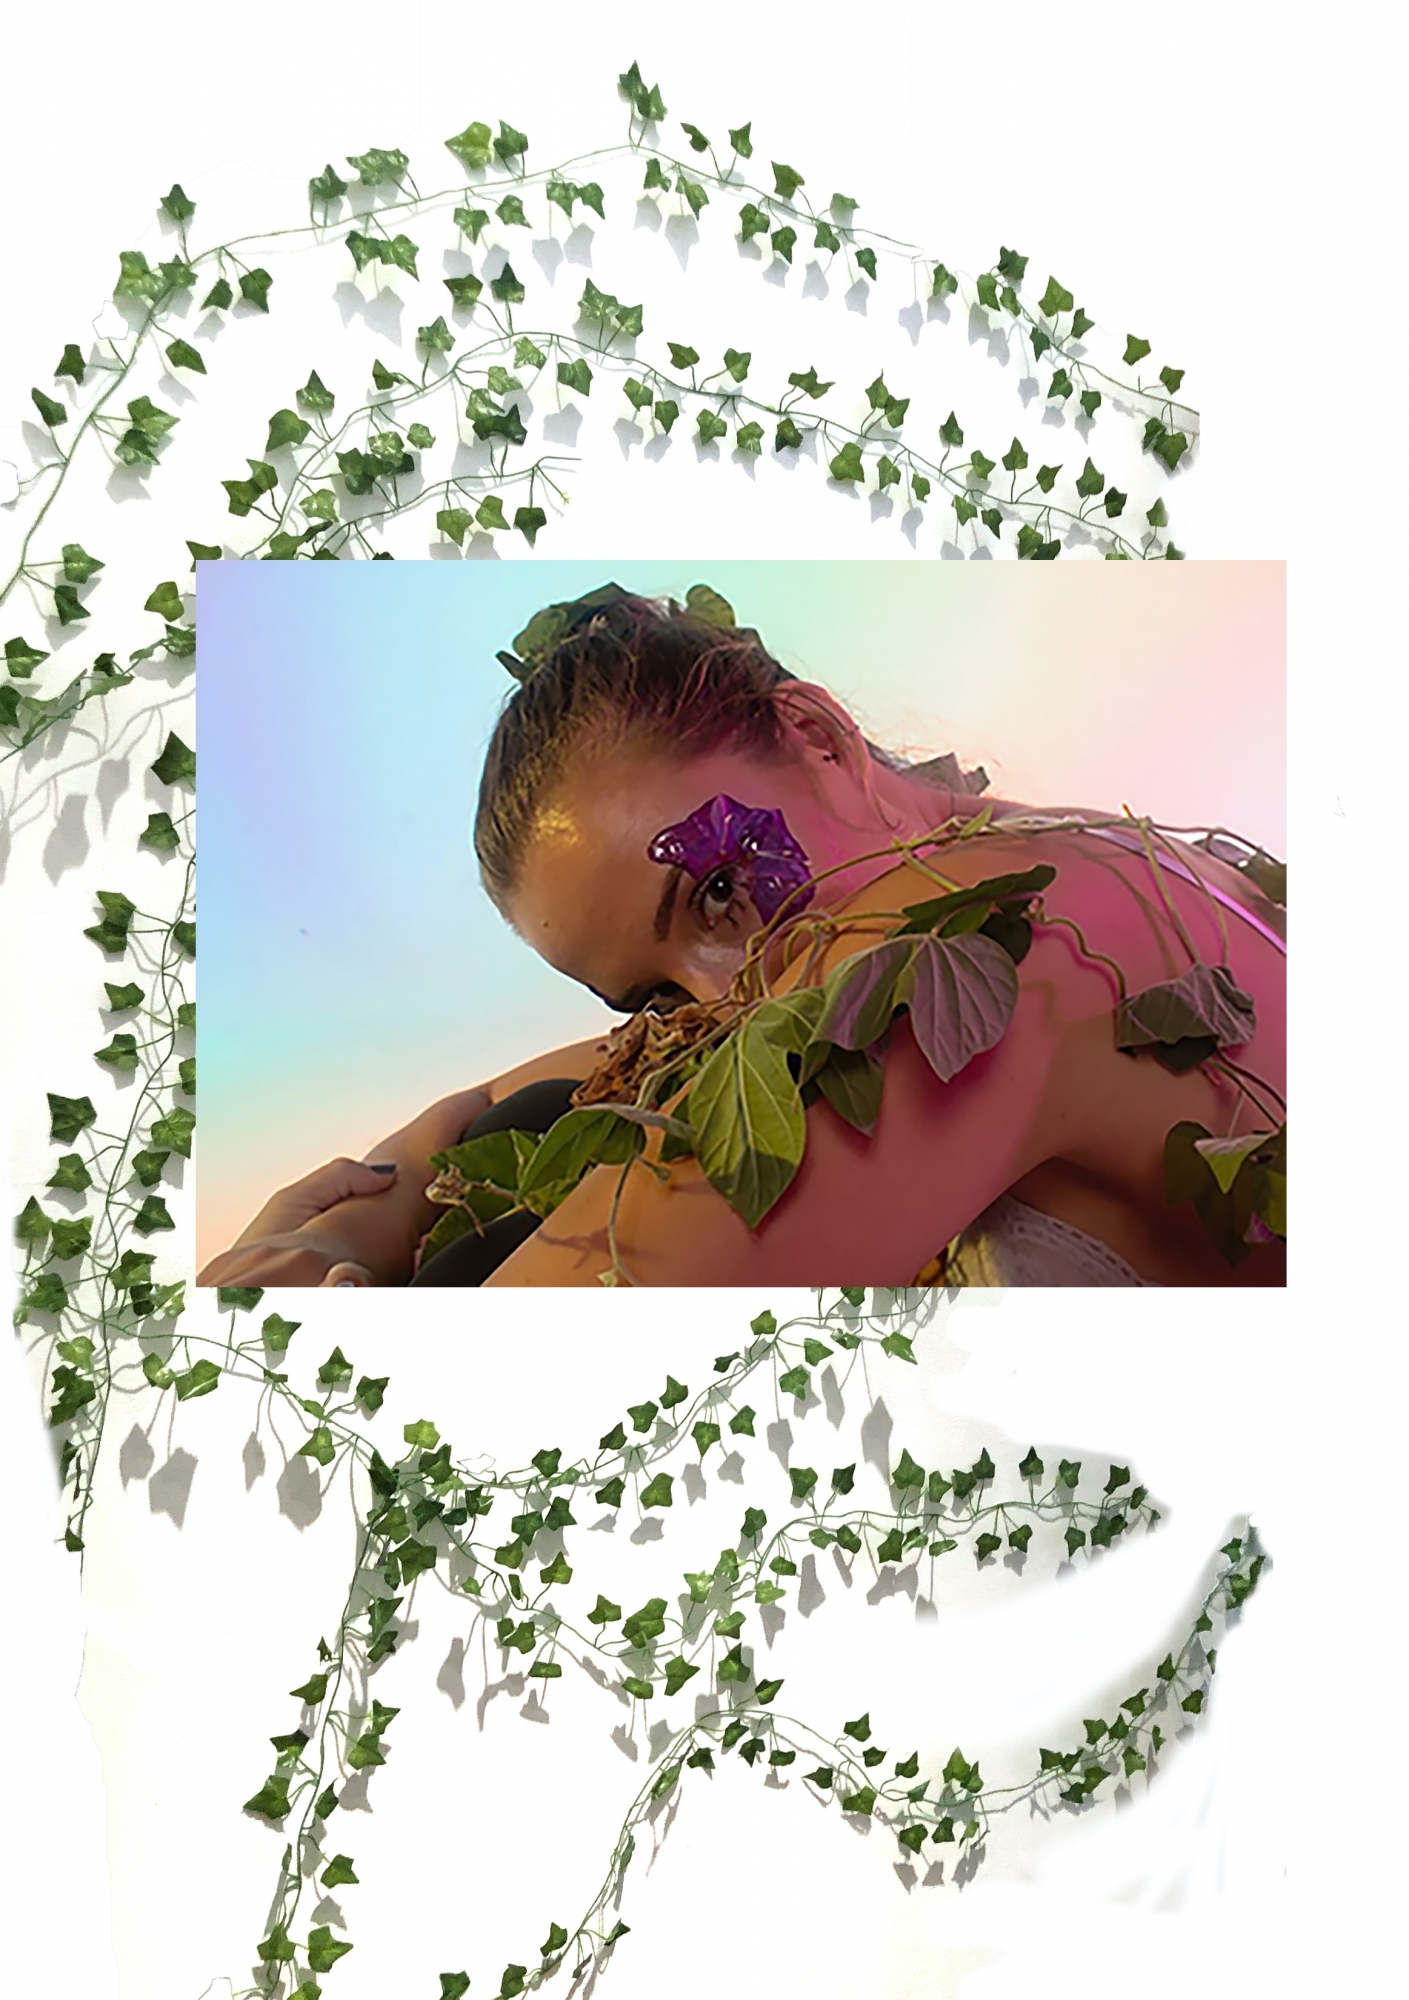 Digital composite image of a young woman with ivy on her body and ivy vines in background.